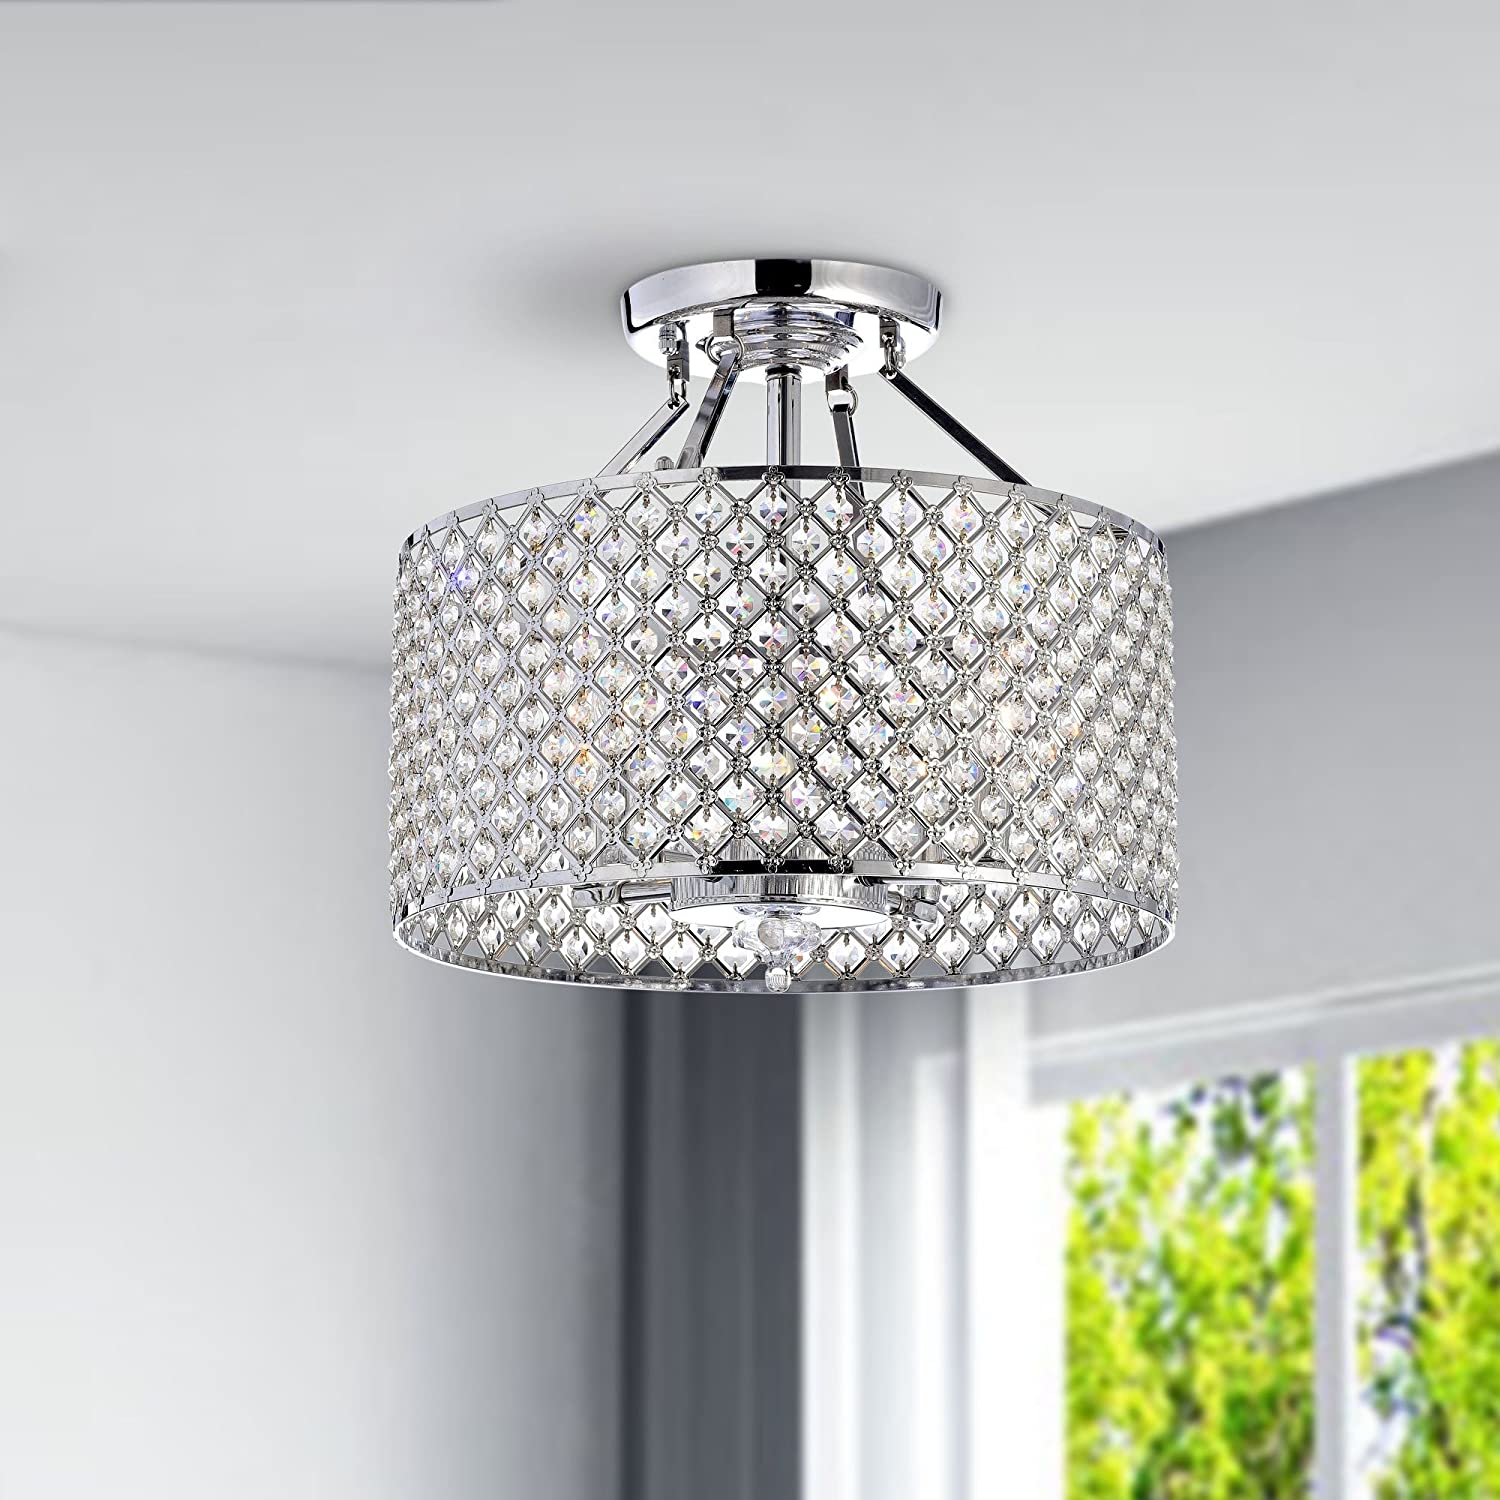 tuscany lights chandelier lighting fixtures of ceiling chandeliers